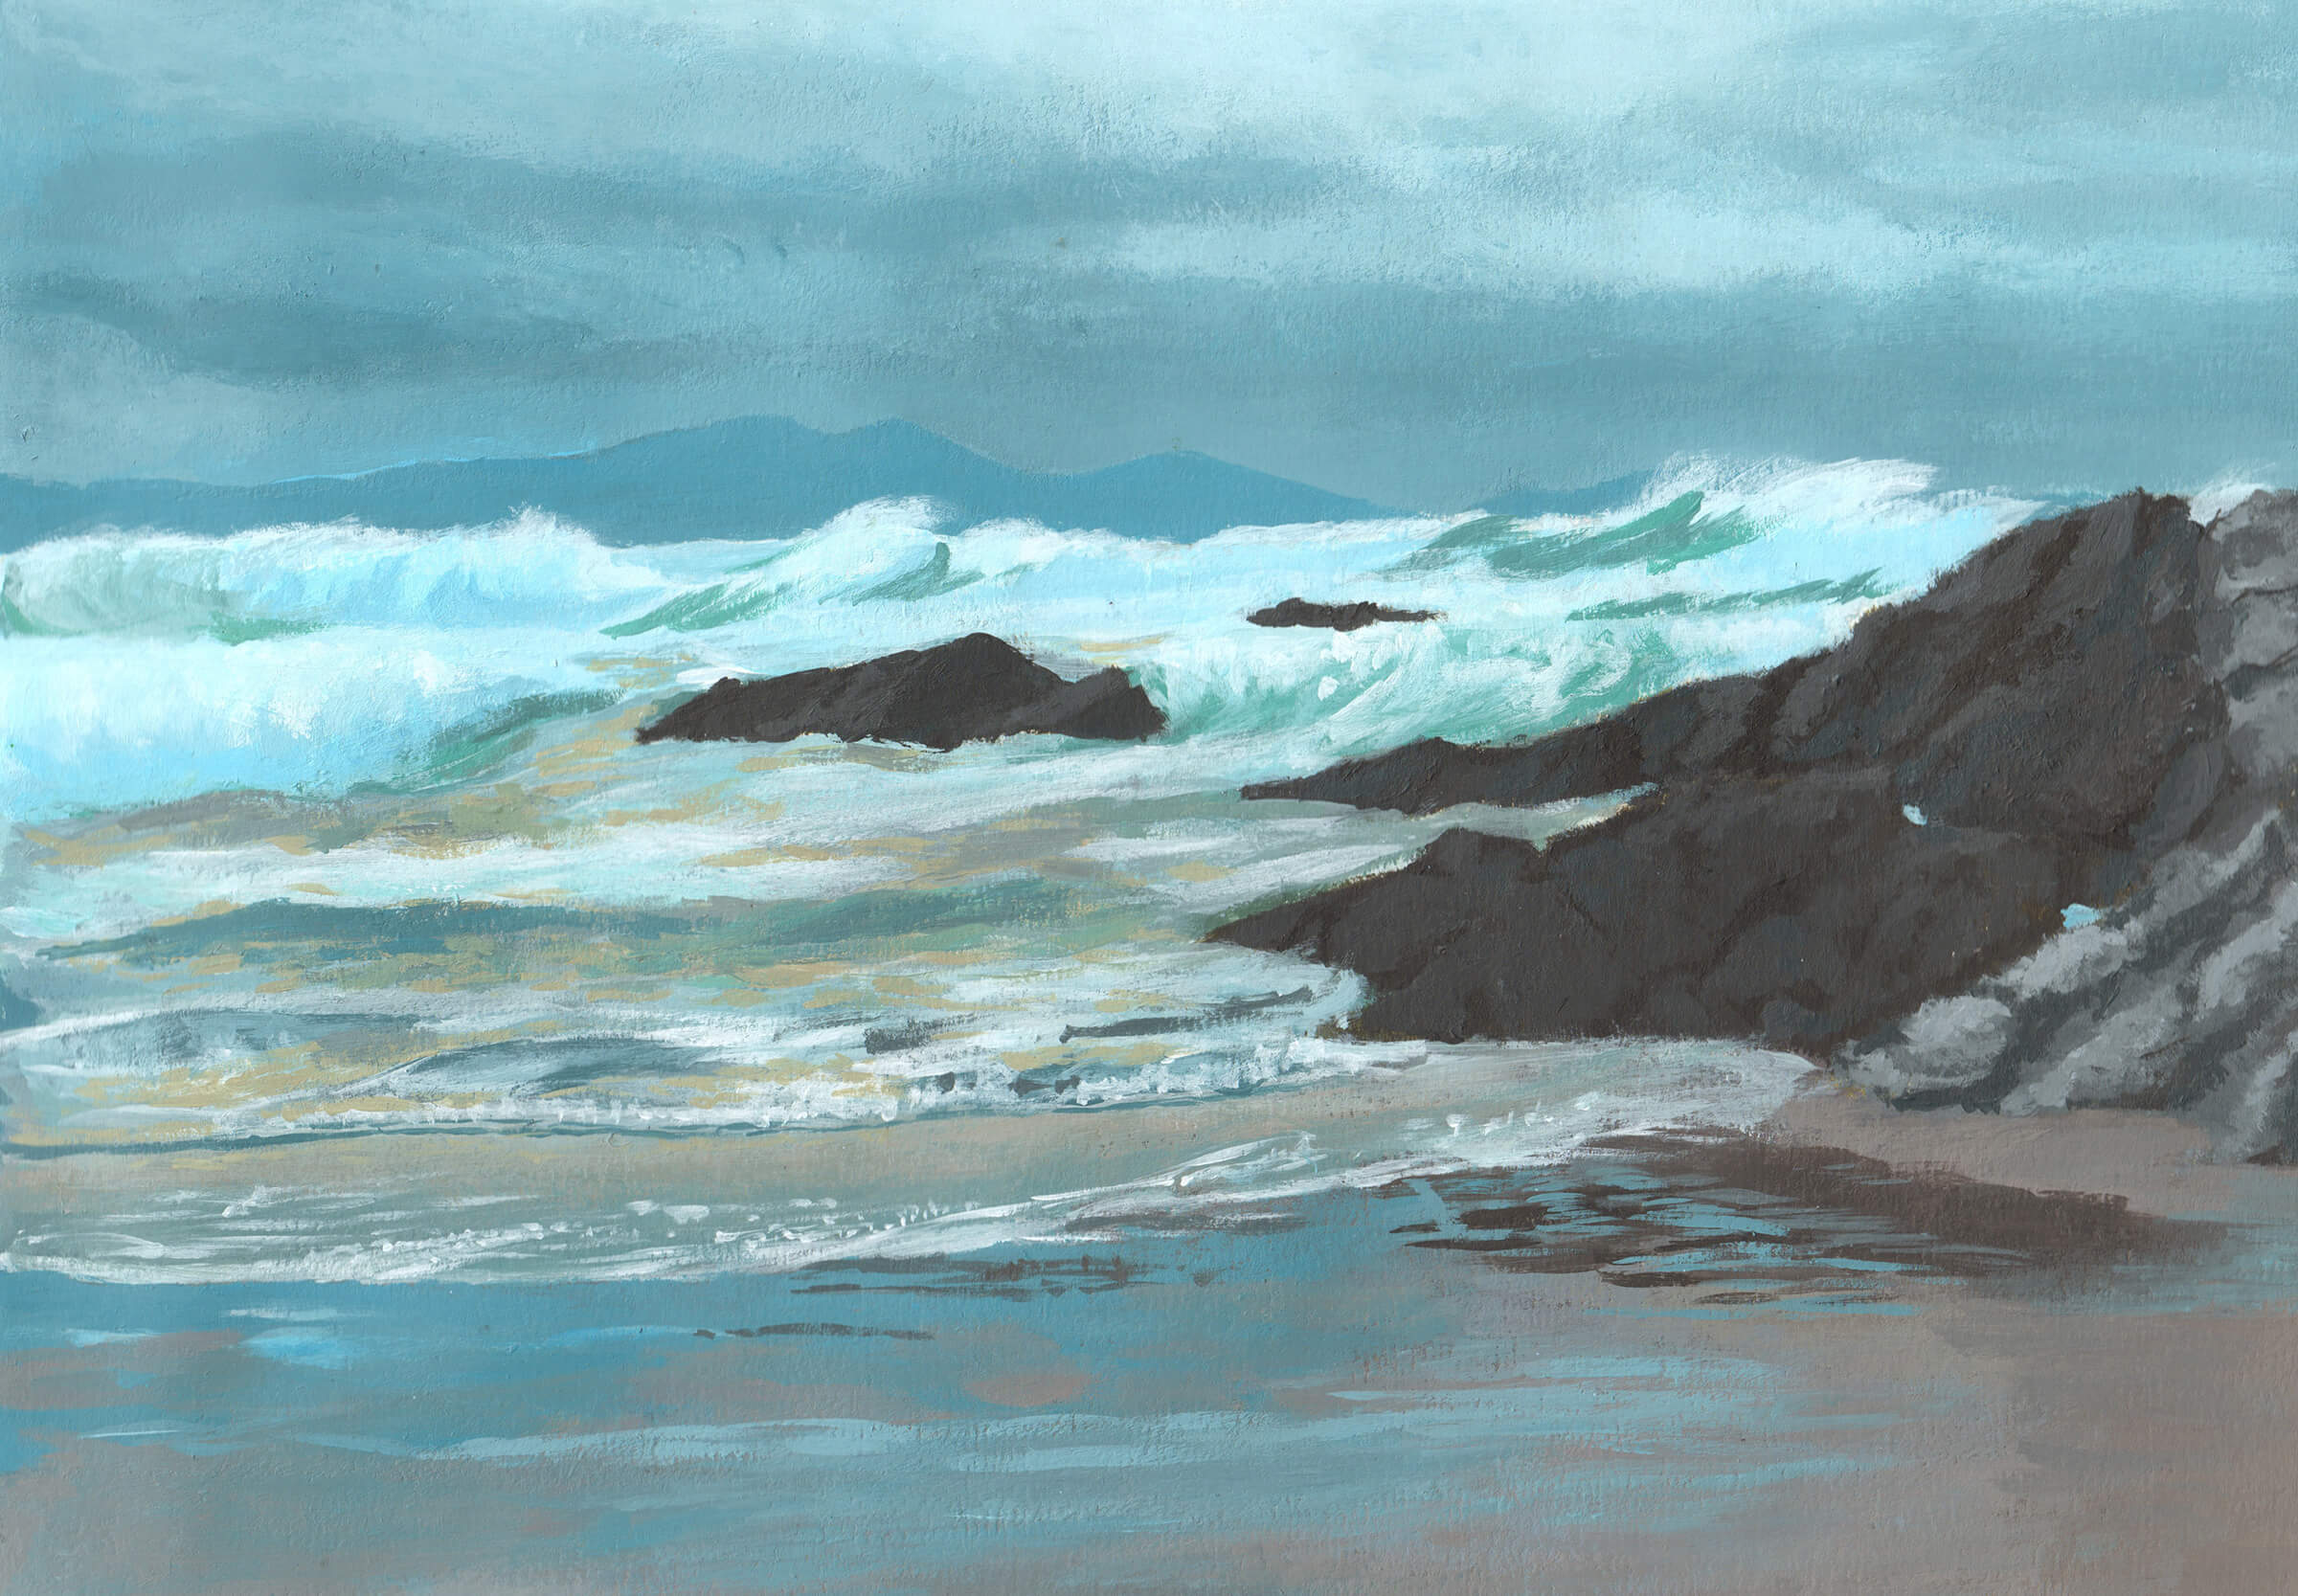 Landscape painting of an ocean shore with choppy white waves crashing against dark gray rocks against a dark cloudy sky.